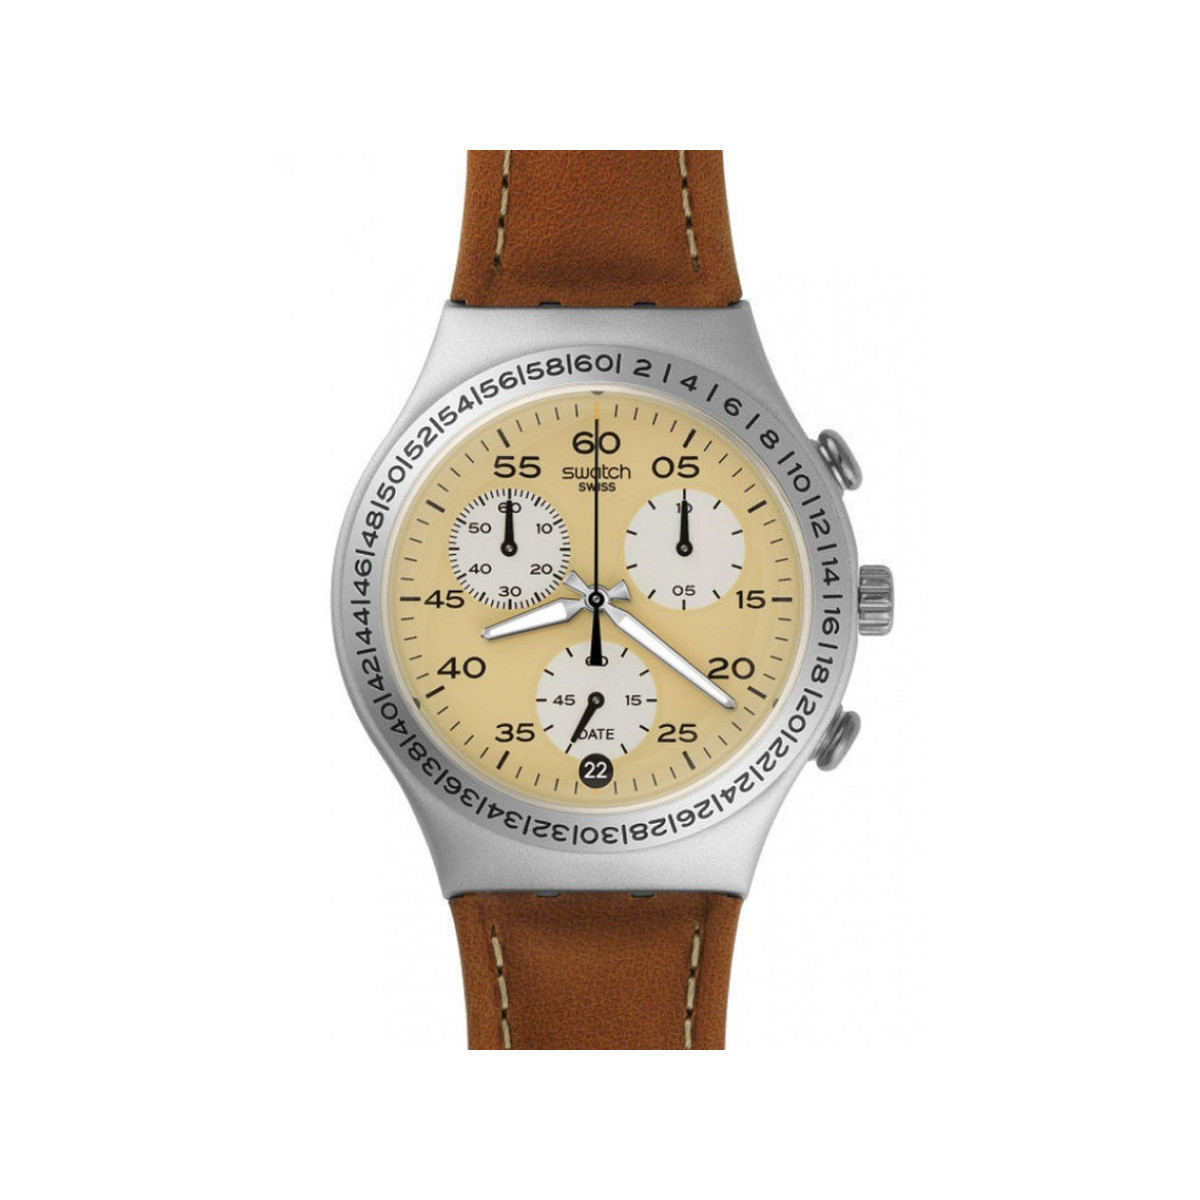 Montre Swatch Brushed earth hommeacier cuir marron